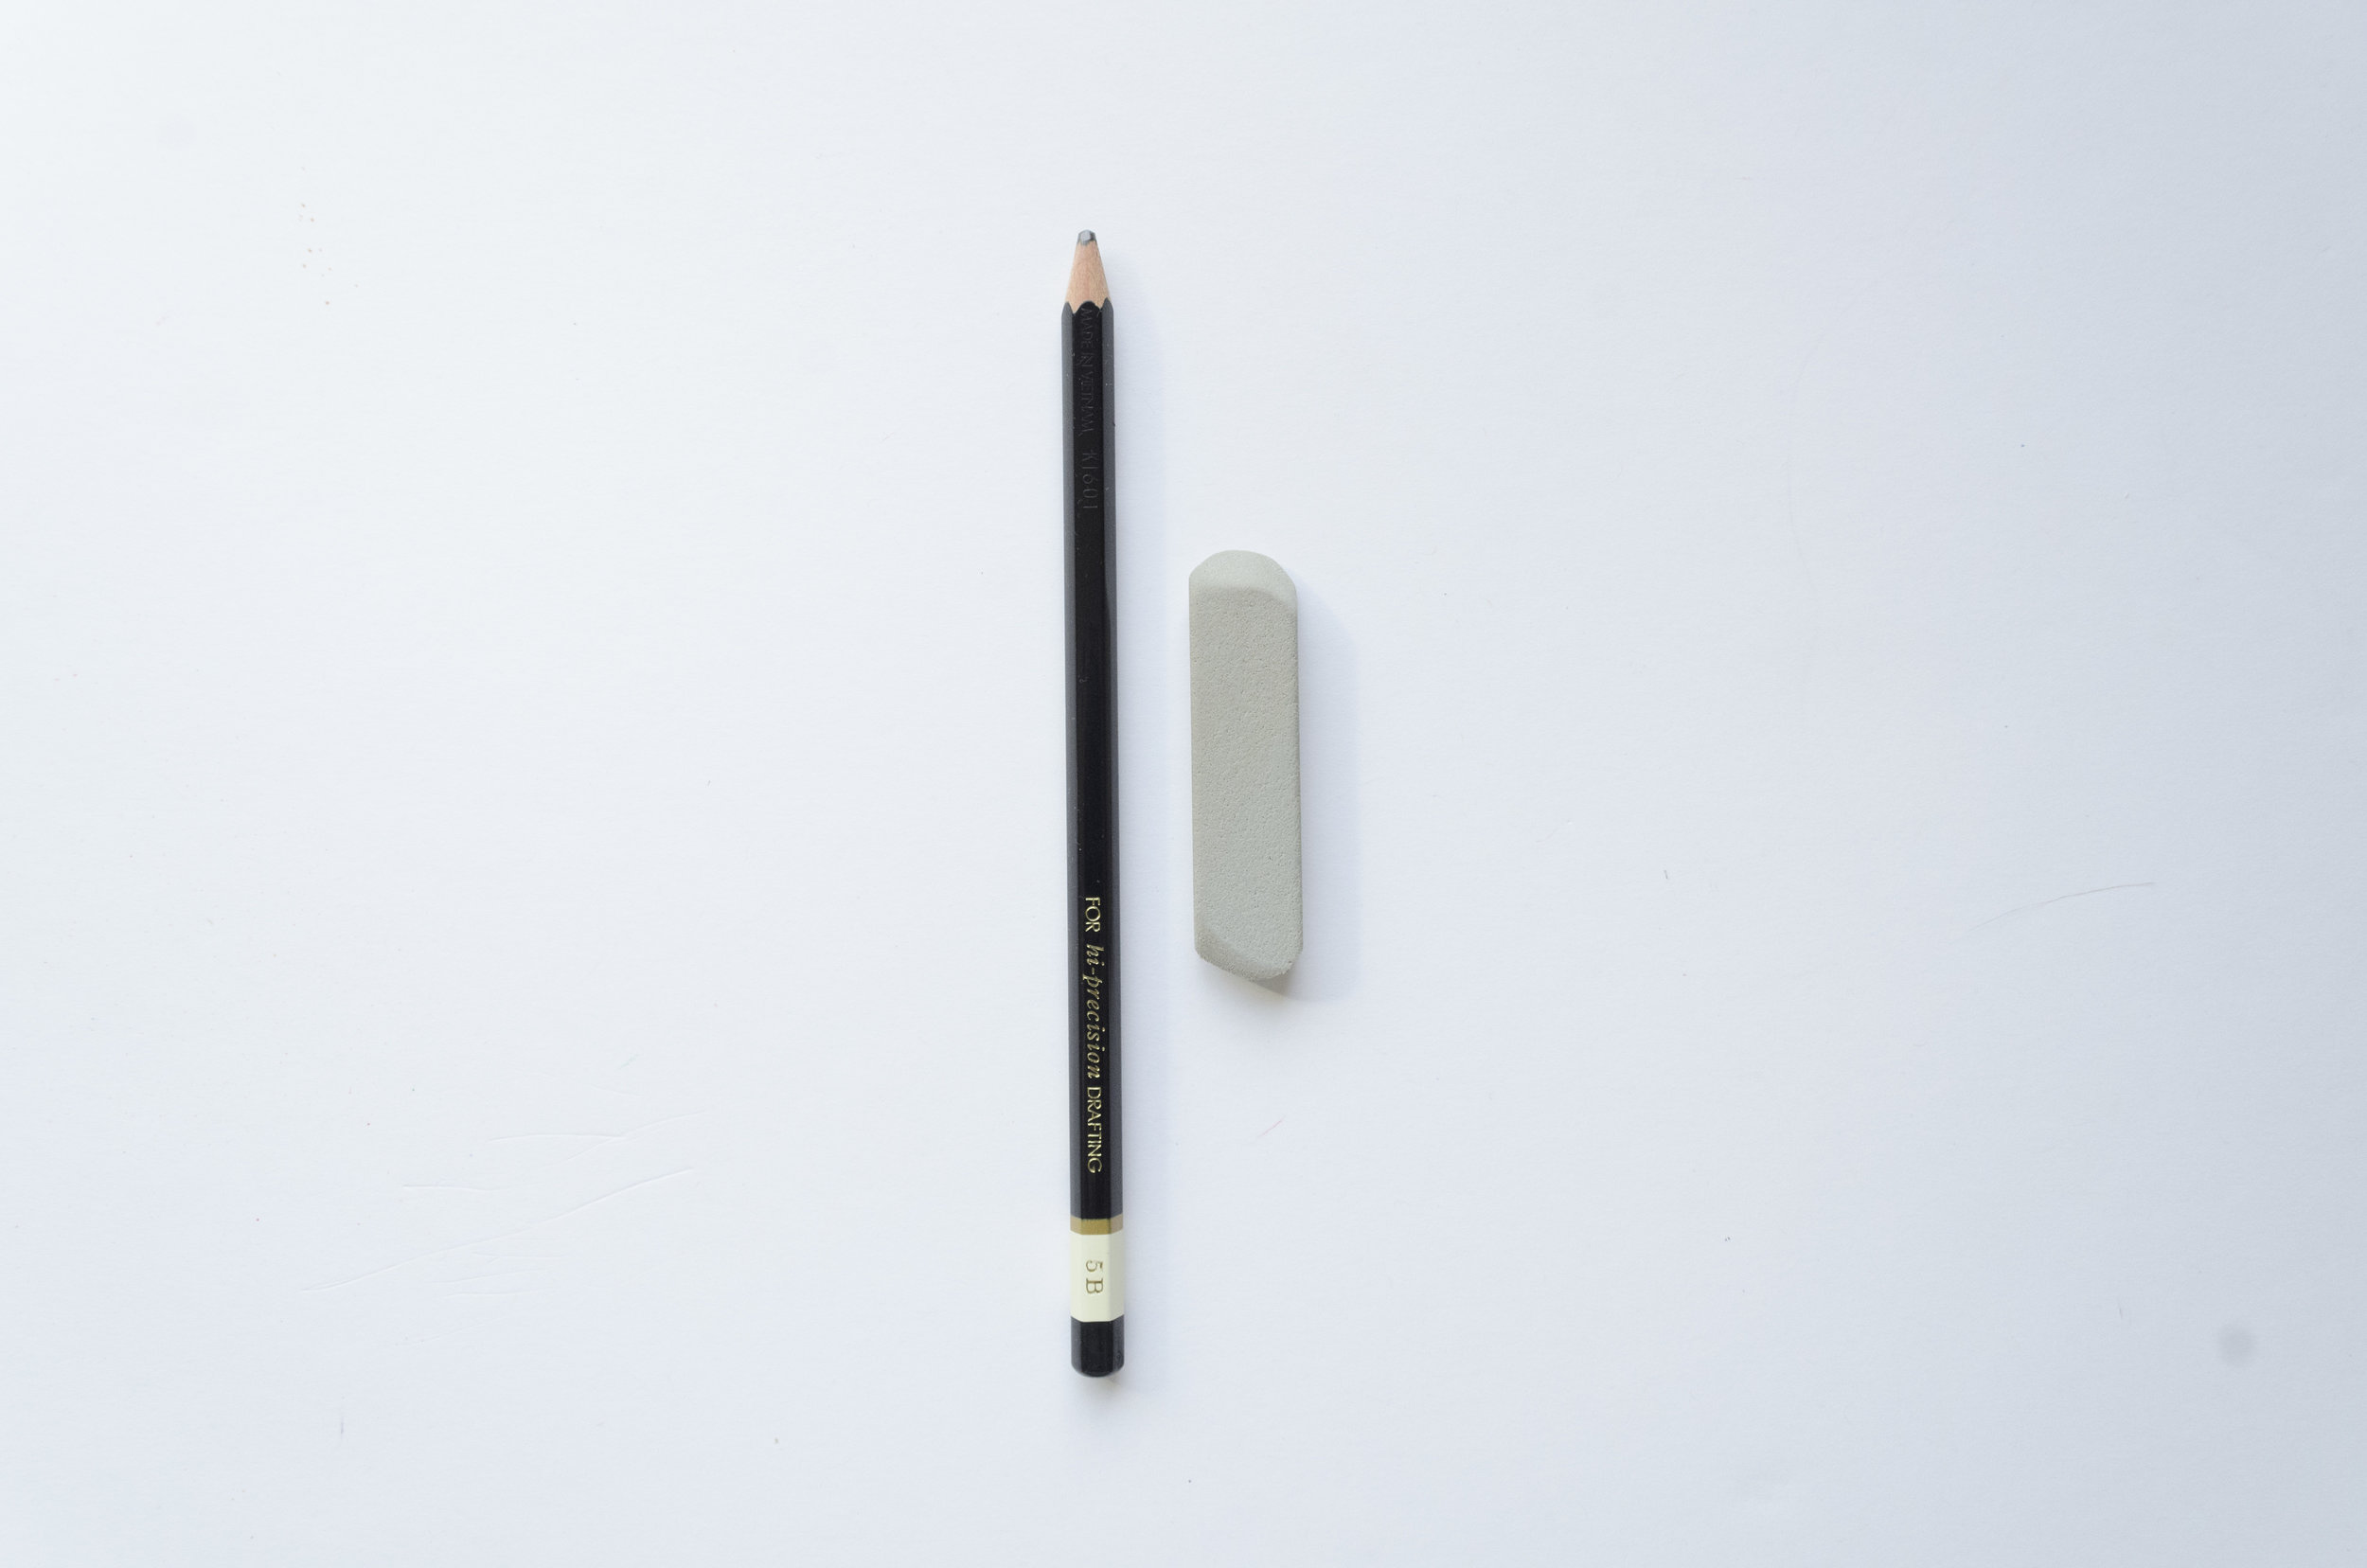 *Placed beside a pencil for scale